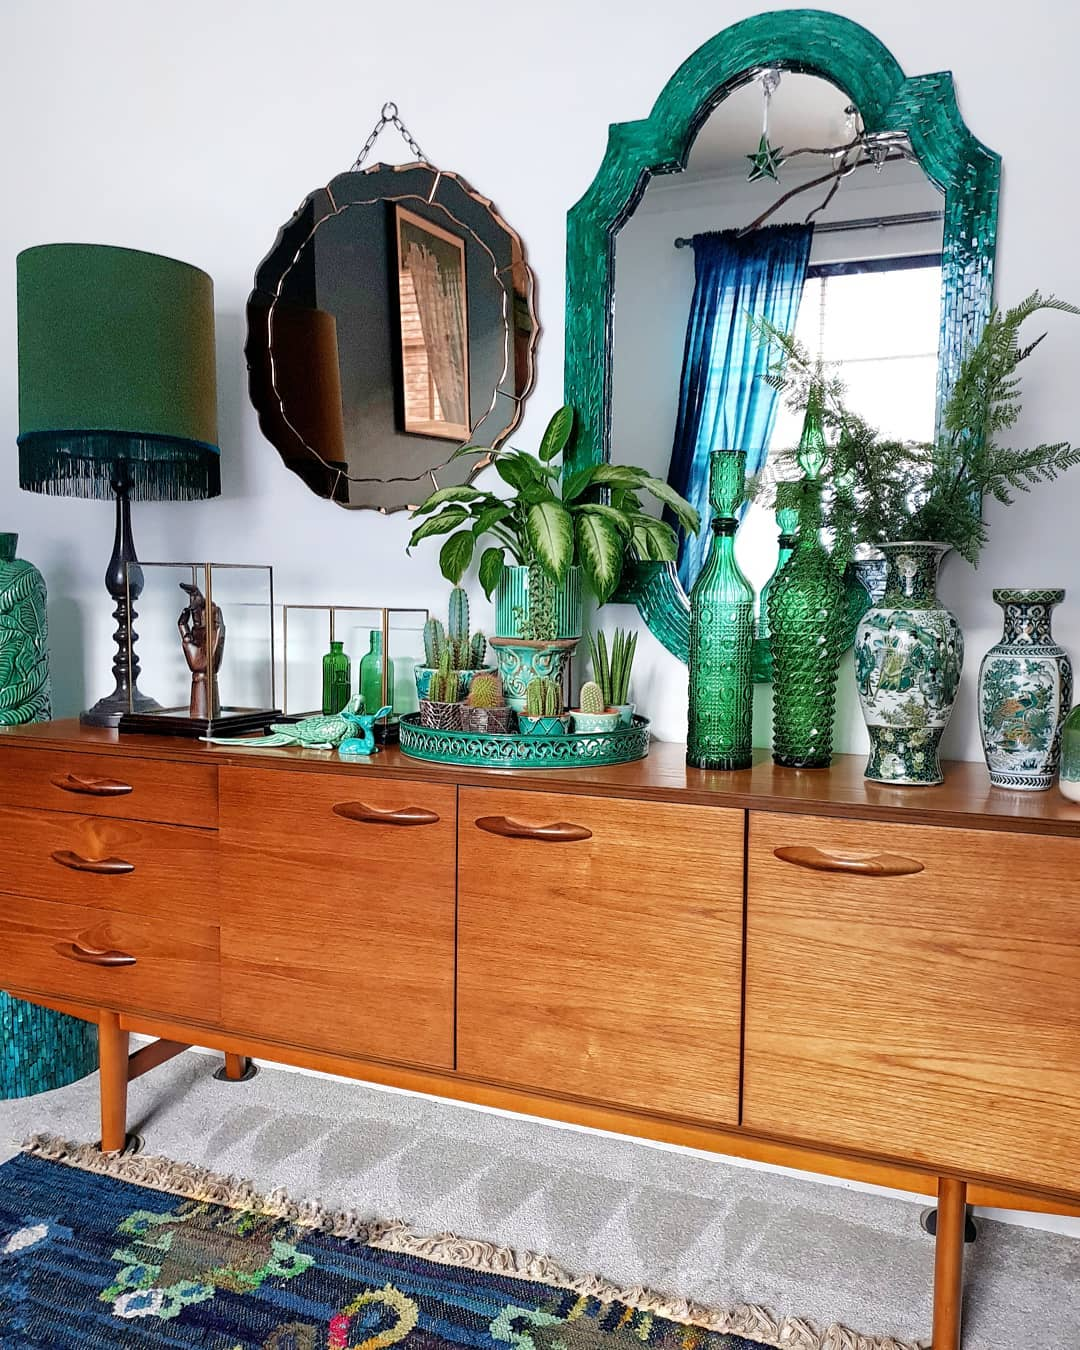 @lorriecos mid-century credenza with green decor